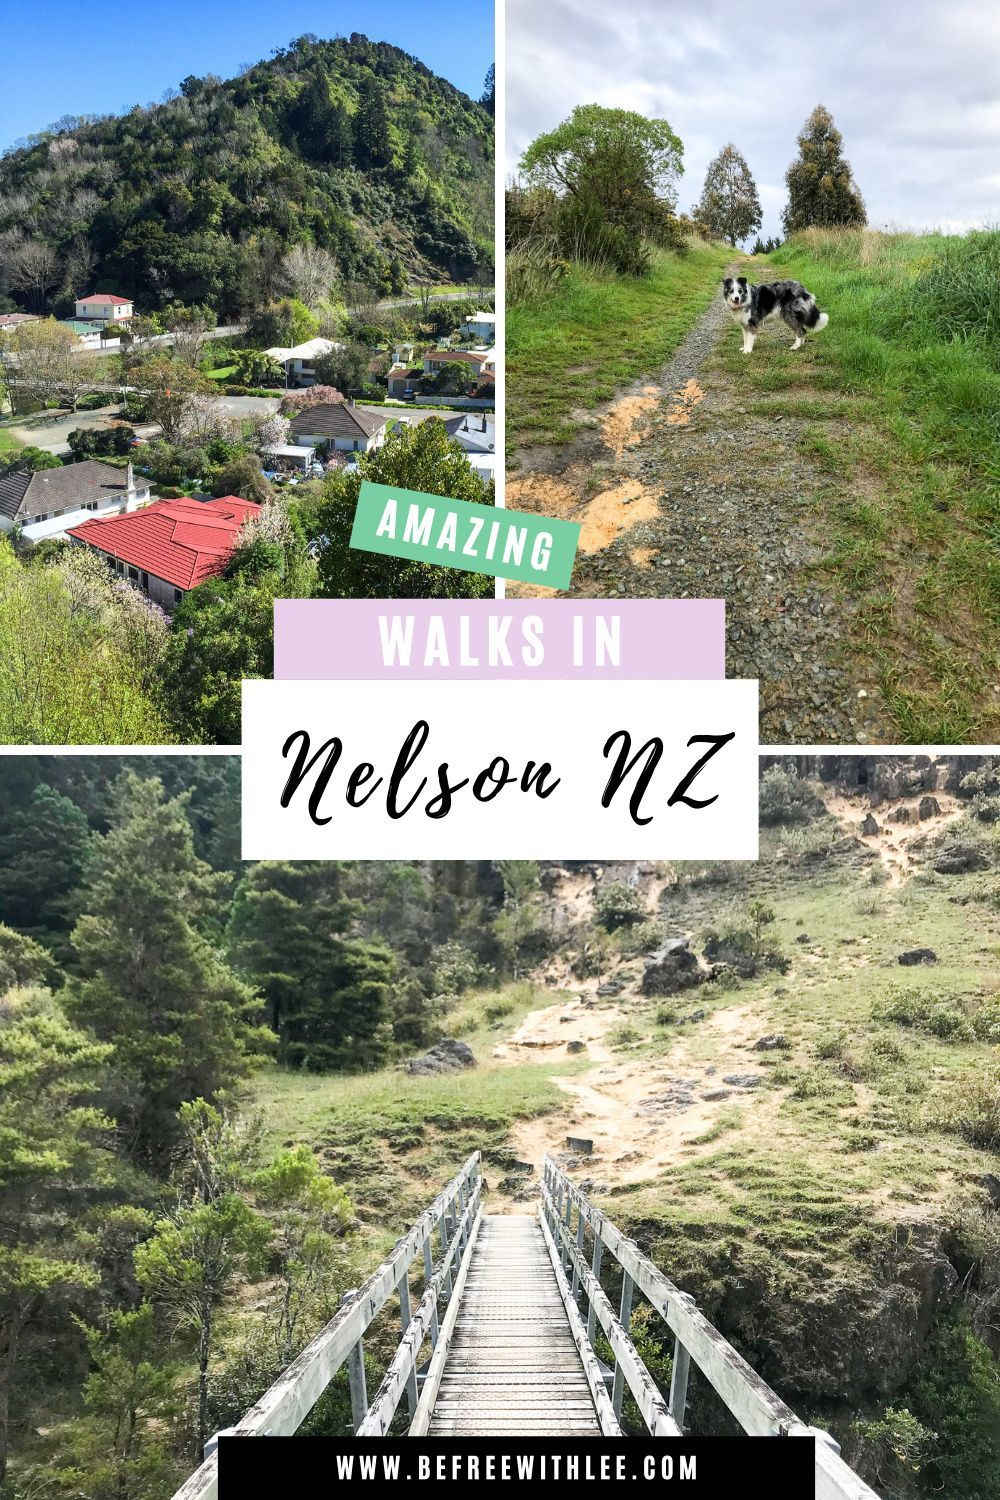 Planning your New Zealand travel itinerary? These 4 short walks in Nelson should be on your list! Nelson is one of the best travel destinations in New Zealand for the incredible scenery and vibrant atmosphere. Make sure to add this New Zealand South Island spot to your list of must see spots in NZ! P.s Whispering Falls is one of my favourite New Zealand photography spots! #nztravel #southislandnz #nzhiking